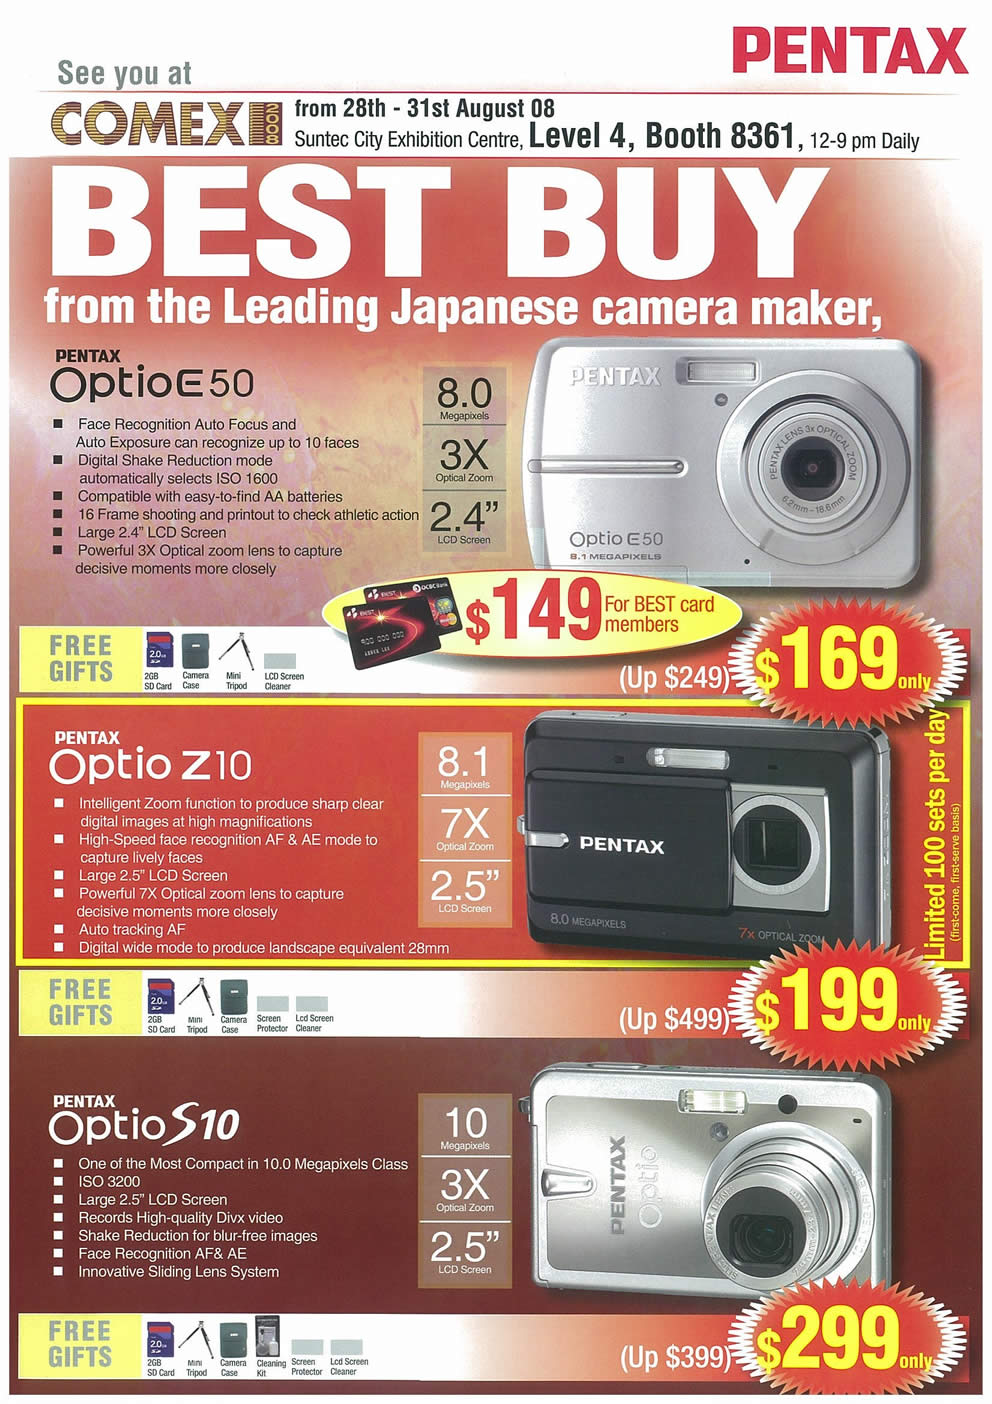 Comex 2008 price list image brochure of Pentax Cameras Page 1